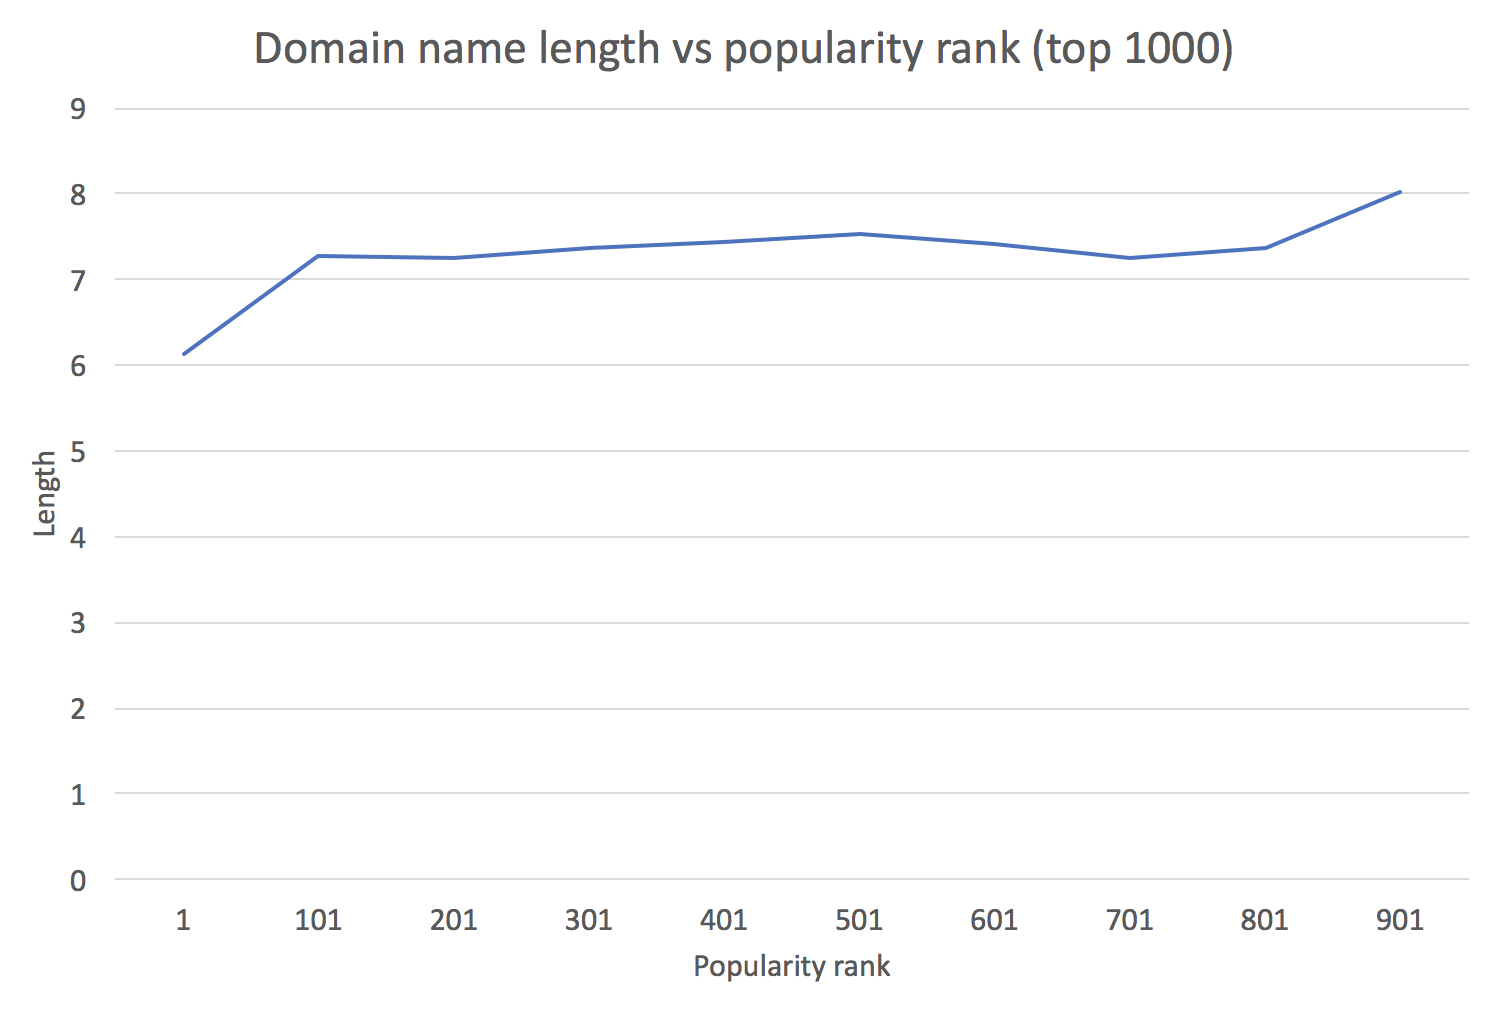 Domain name length vs popularity (top 1000)